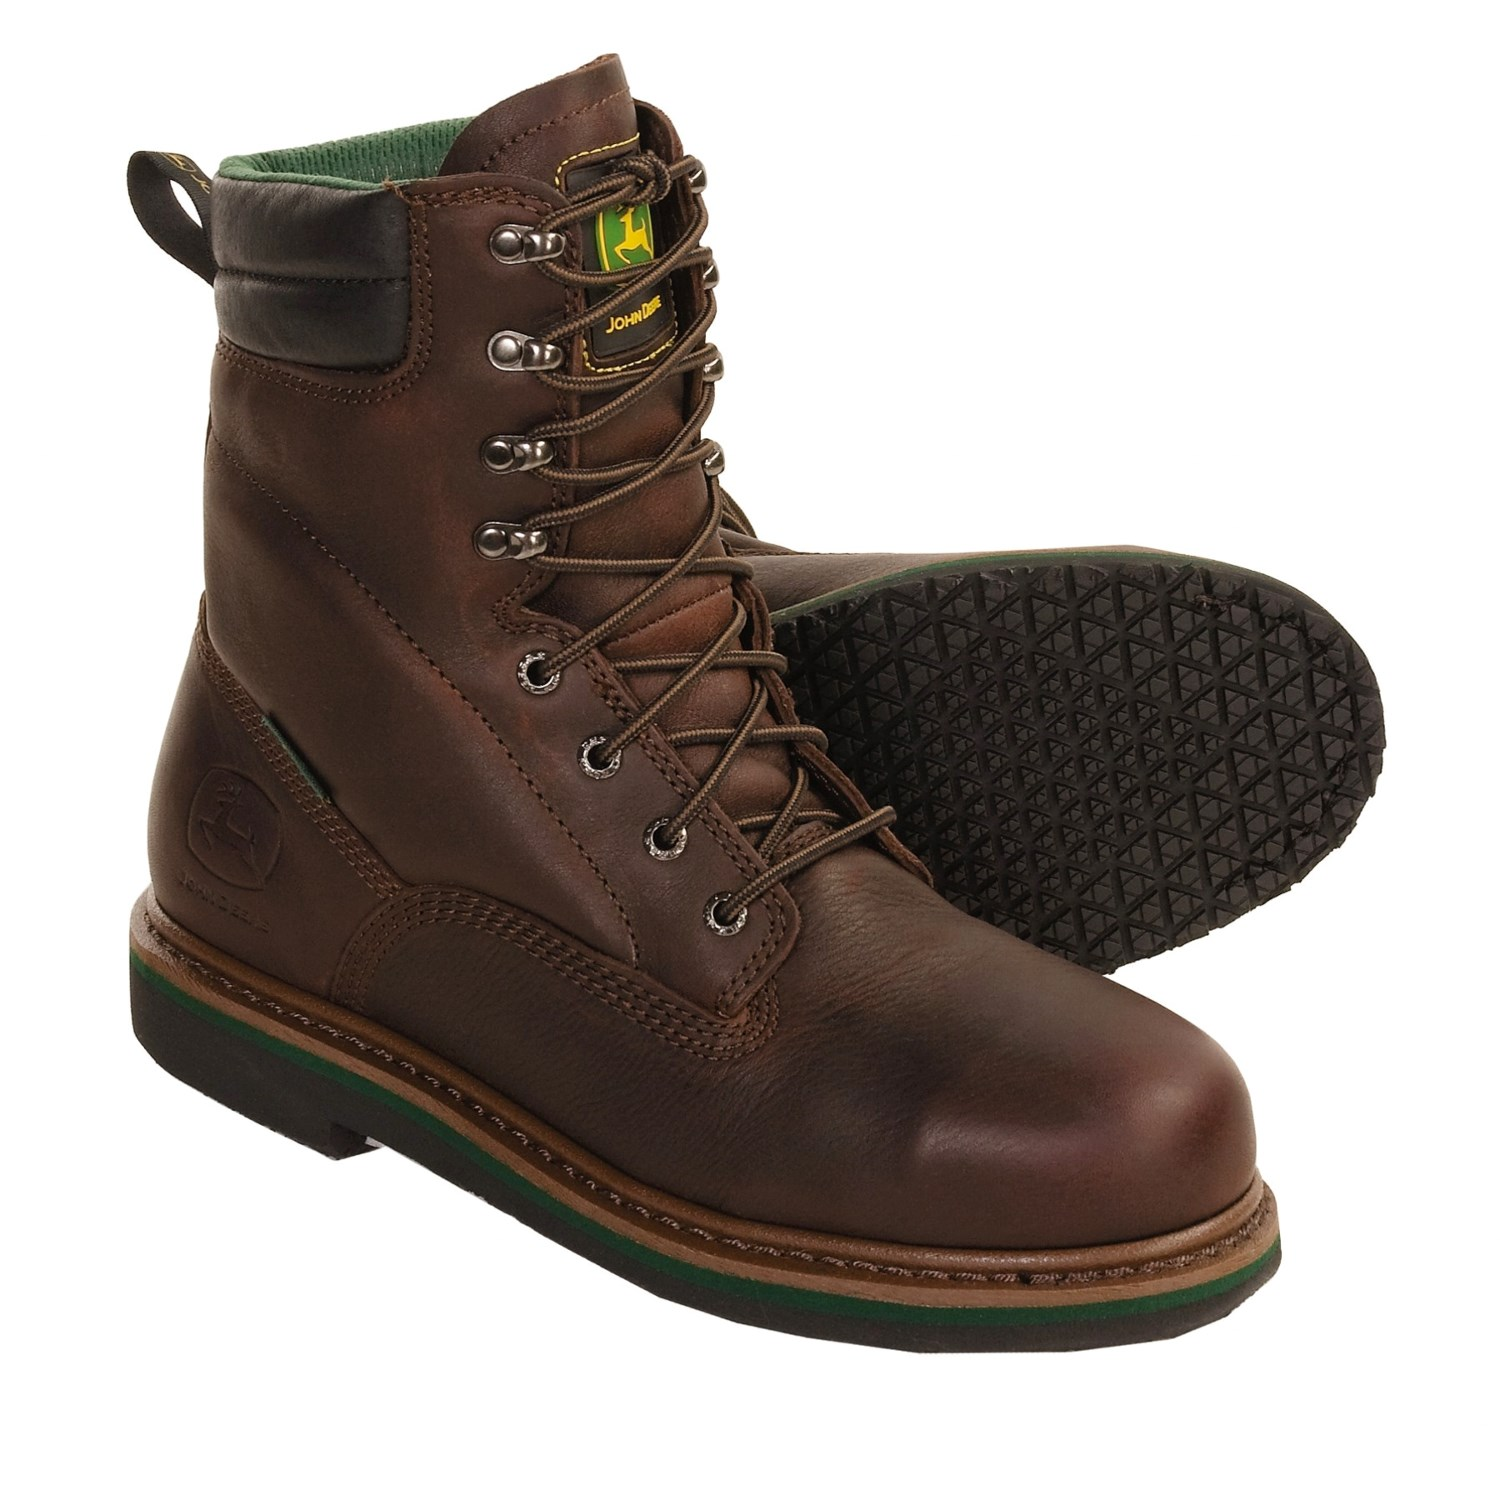 Source url: http://www.brcla.com/image/brown_work_shoes_for_women